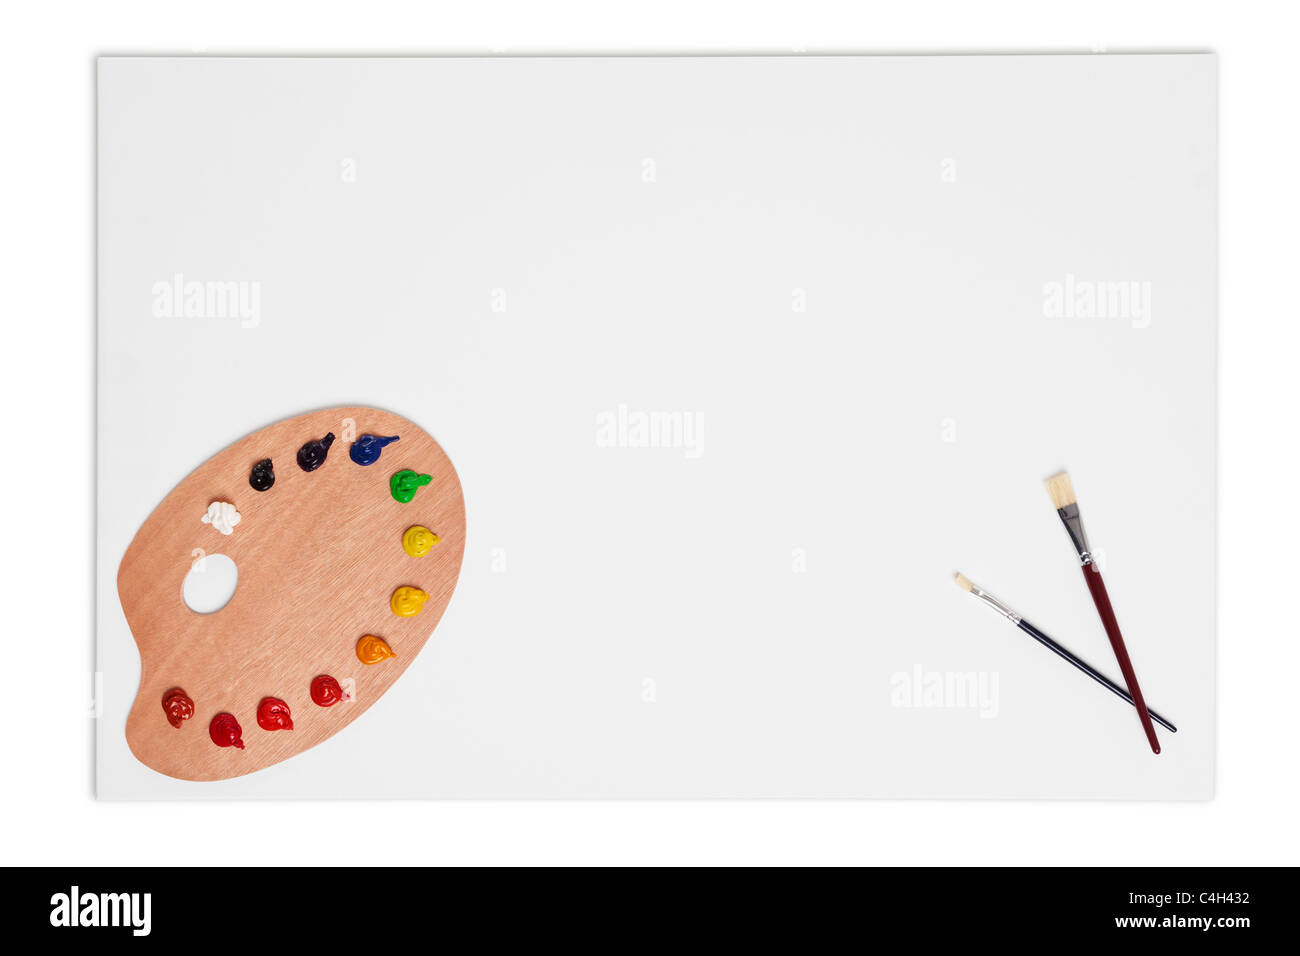 Photo of an artists blank canvas with brushes and paint palette isolated on a white background with clipping path. - Stock Image